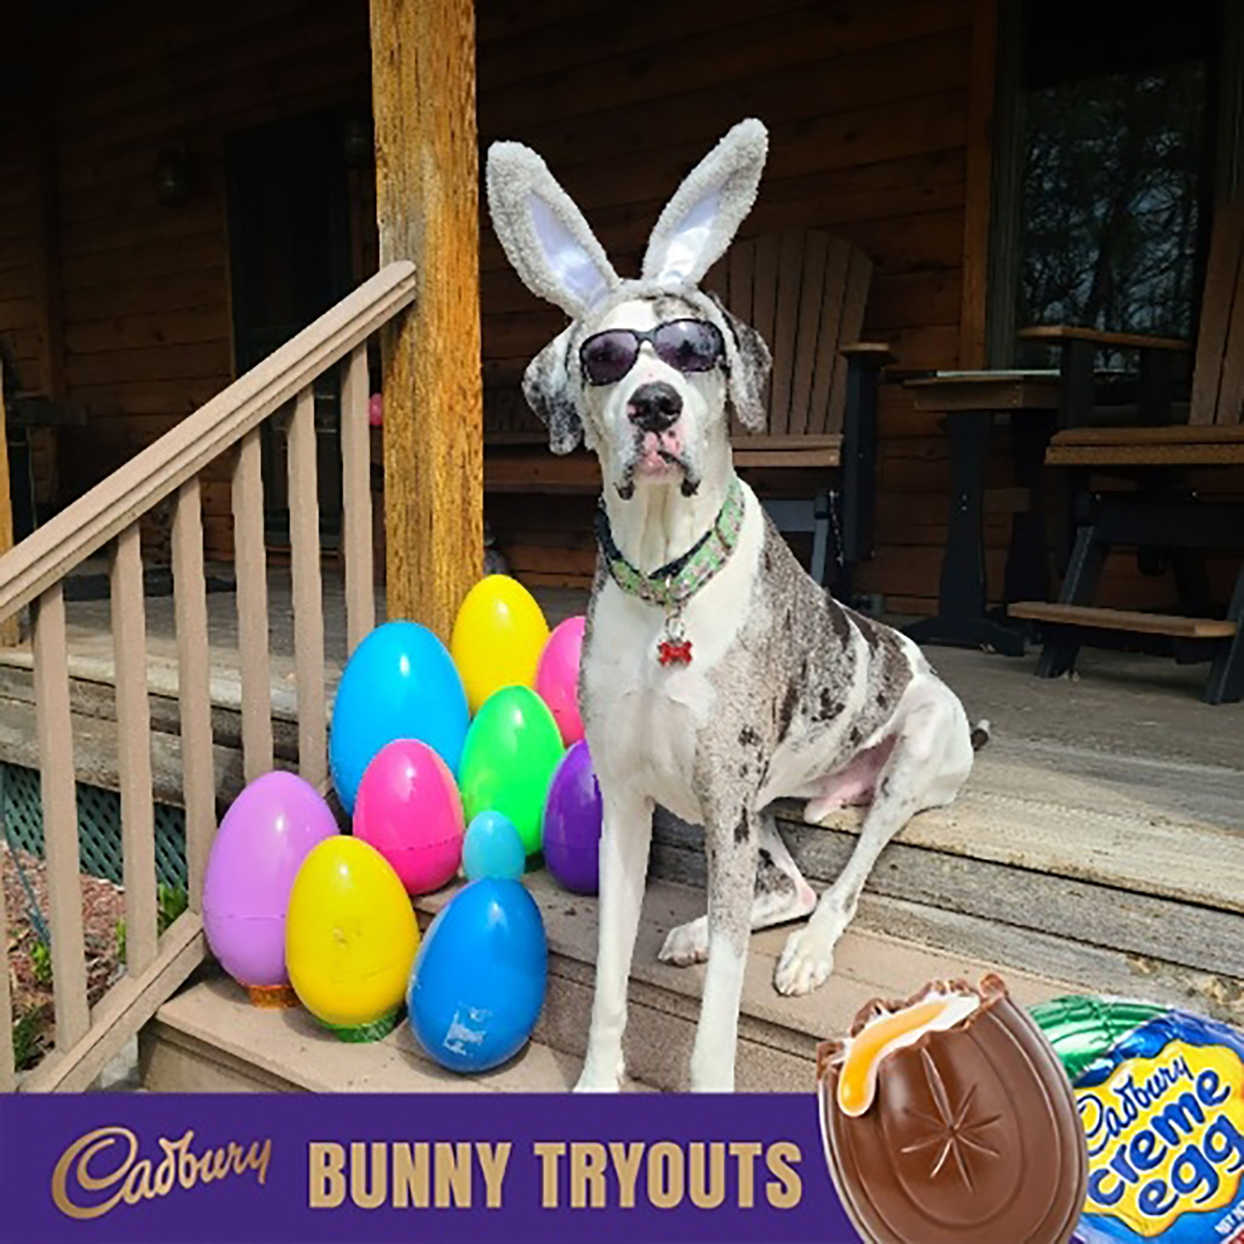 large spotted dog wears bunny ears next to large Easter eggs for Cadbury ad